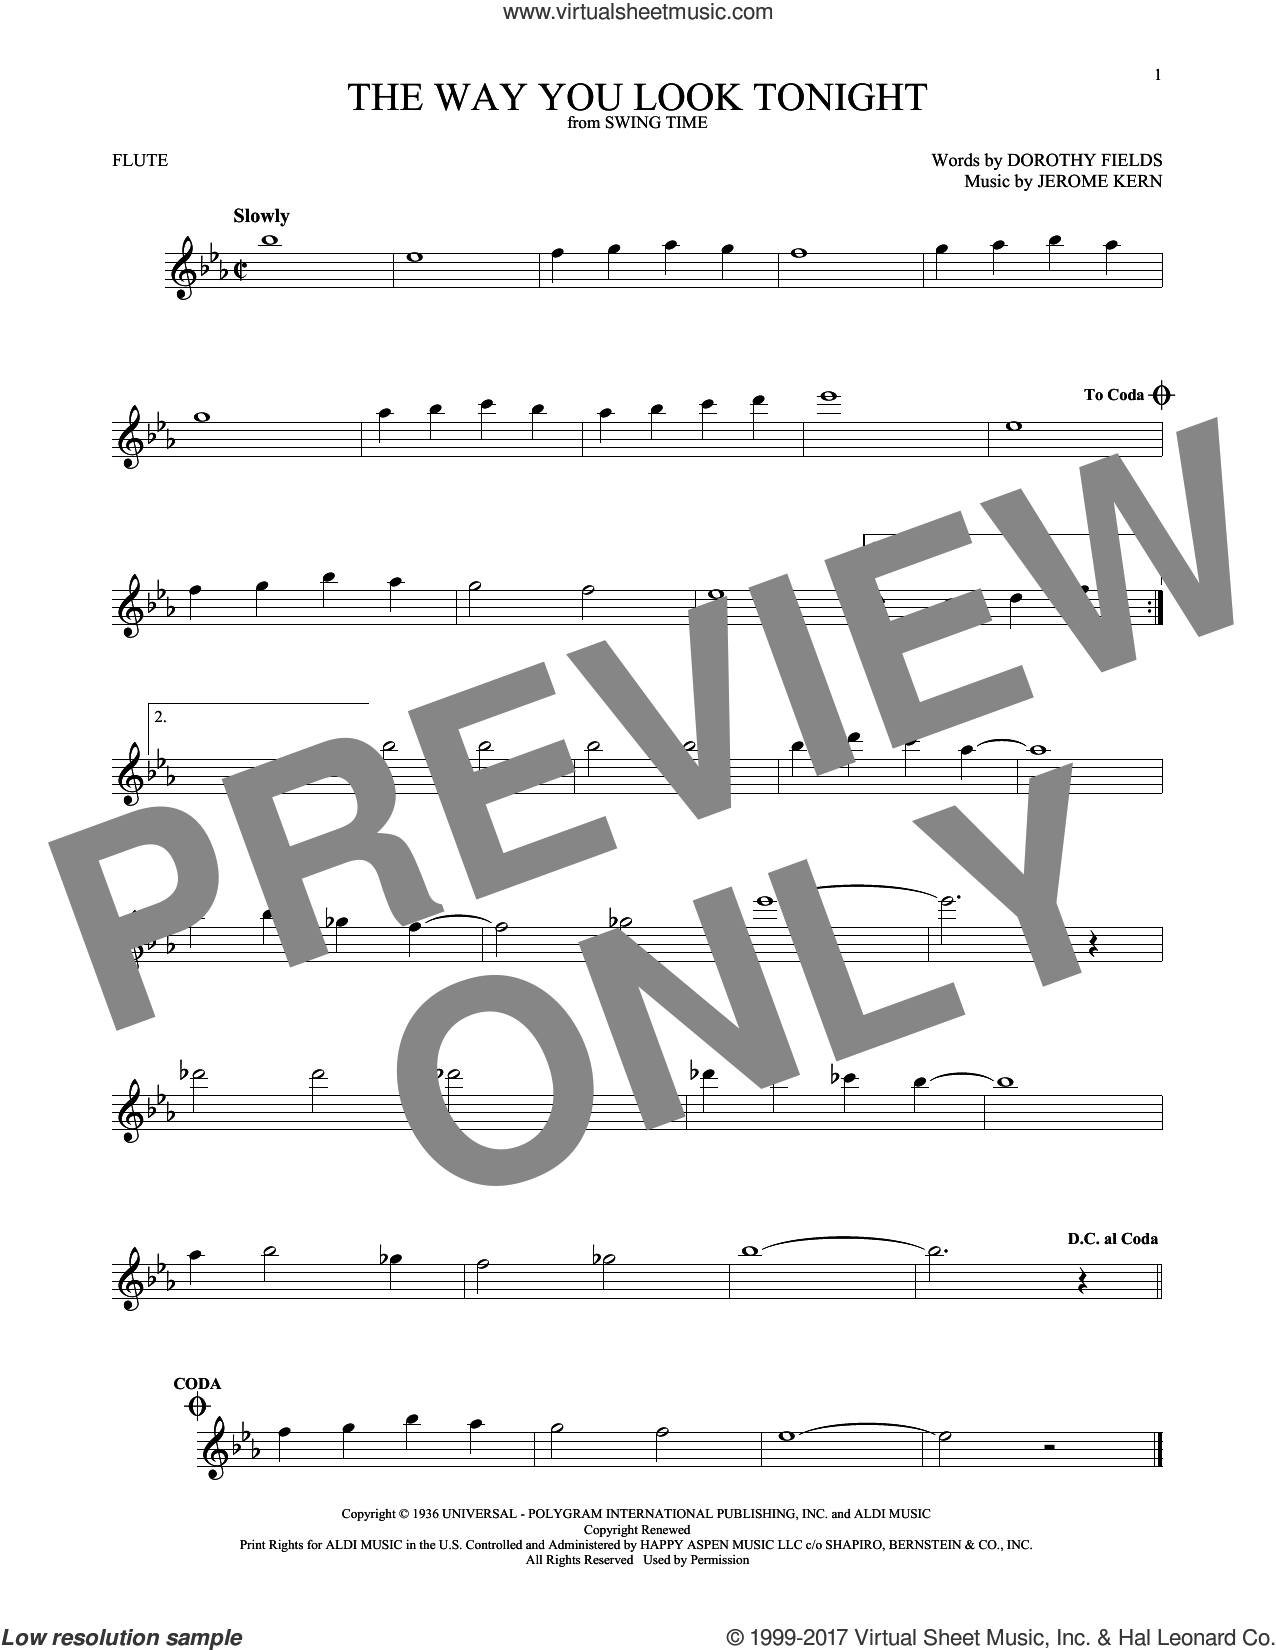 The Way You Look Tonight sheet music for flute solo by Jerome Kern and Dorothy Fields, intermediate skill level